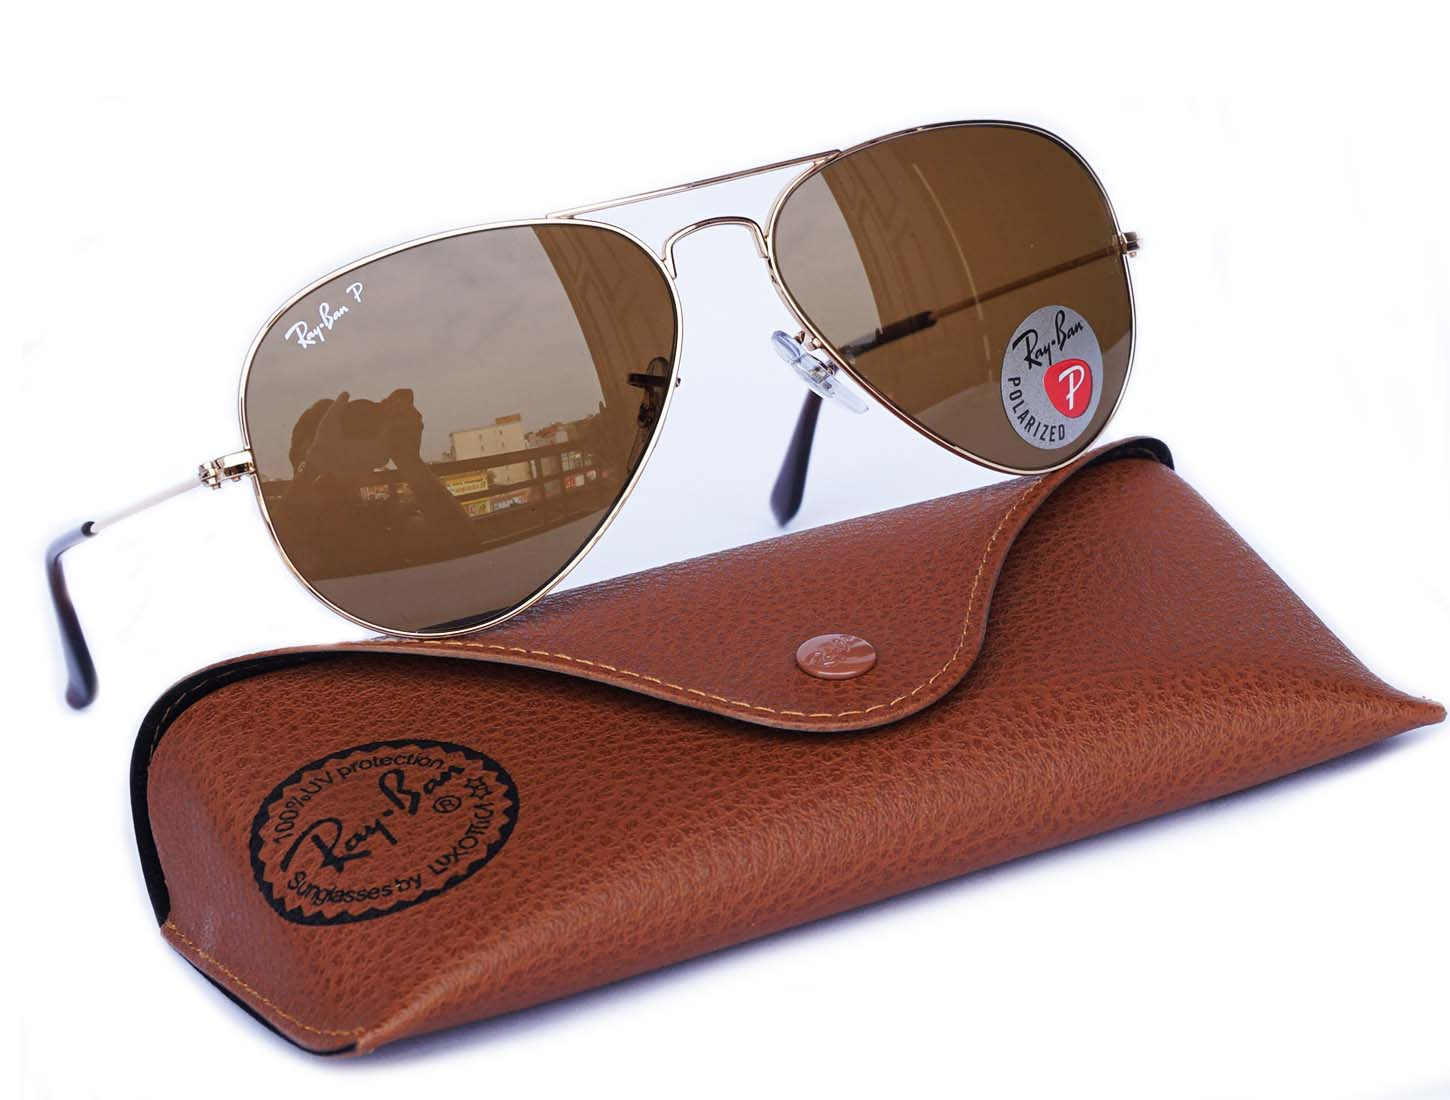 Ray Ban 3025 Aviator polarized gold brown RB 3025 001/57 size 62